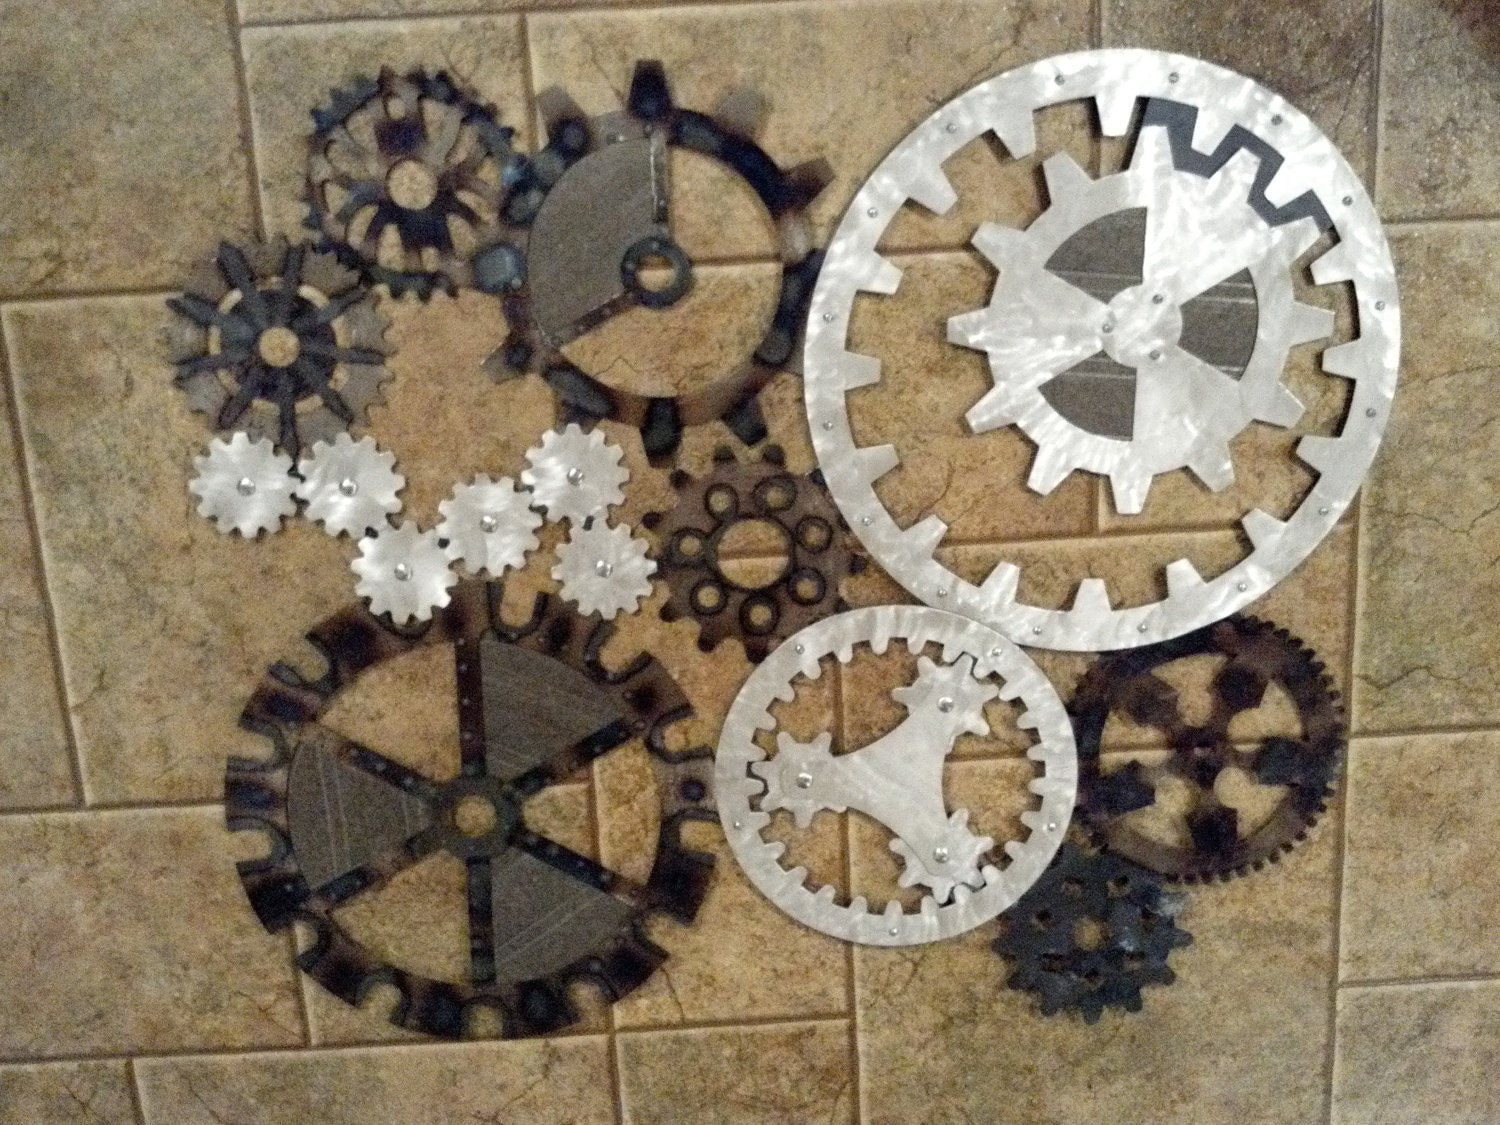 Zodiac Home Decor Wall Decor Gears Simple Home Decoration